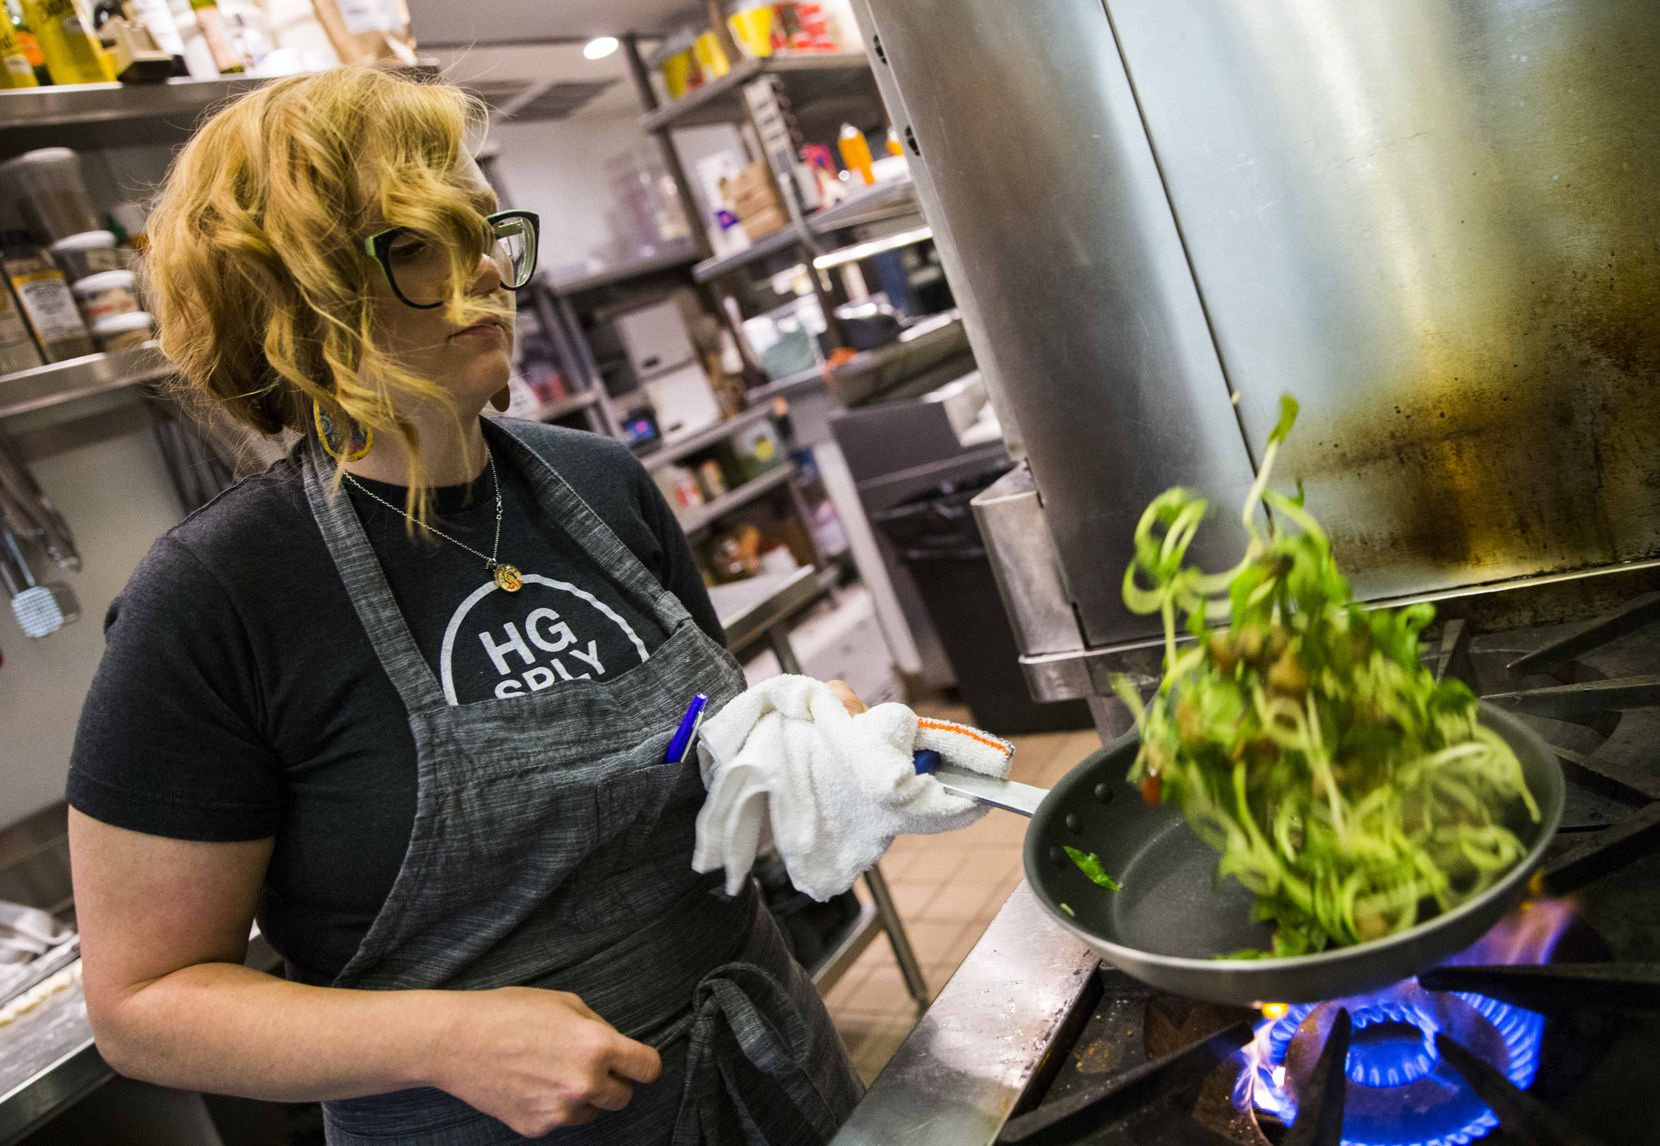 Chef Danyele McPherson makes a zucchini pasta bowl from spiraled zucchini on Thursday, March 31, 2016 at Remedy restaurant in Dallas. (Ashley Landis/The Dallas Morning News)